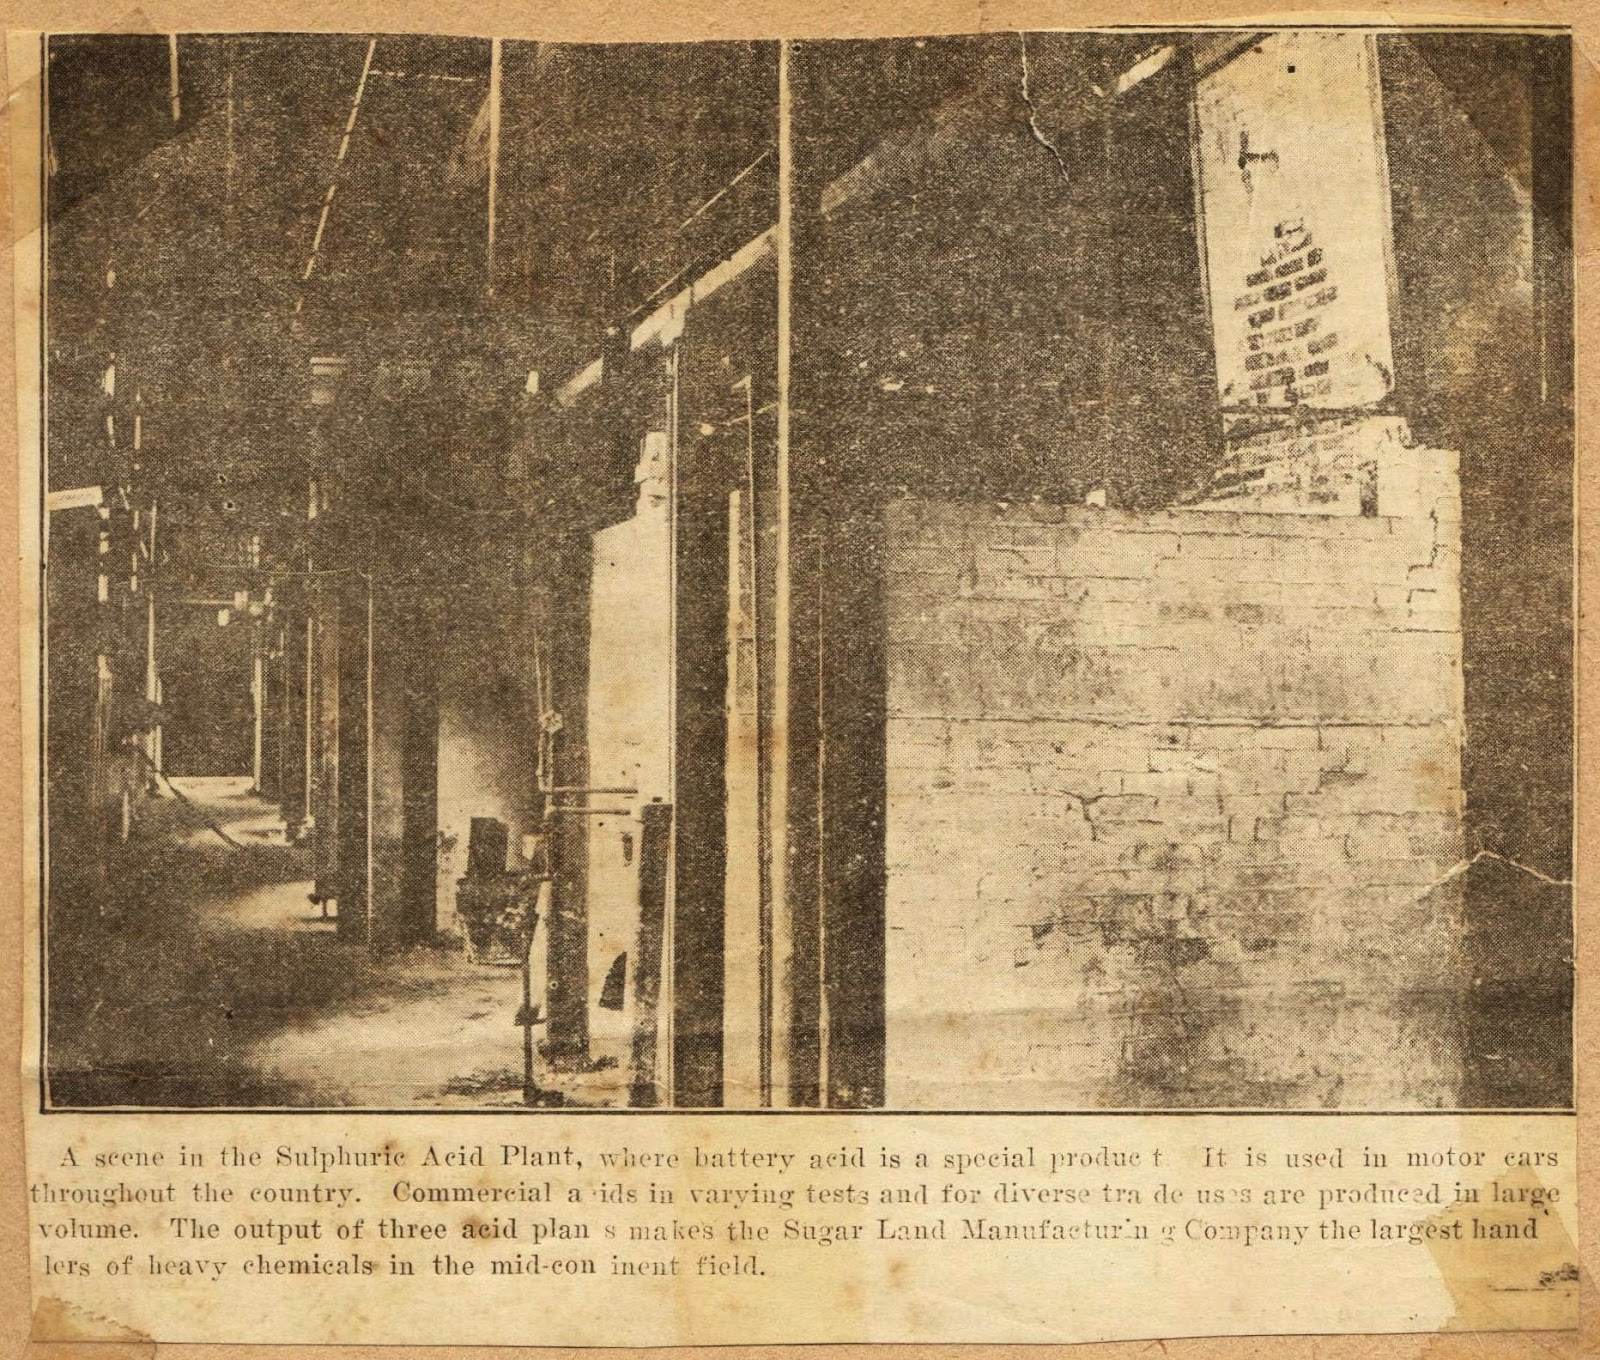 How to scrapbook newspaper articles - I M Not Sure What To Make Of The Photo S Caption It Says The Sugar Land Manufacturing Company A Subsidiary Of Sugarland Industries Made Battery Acid In